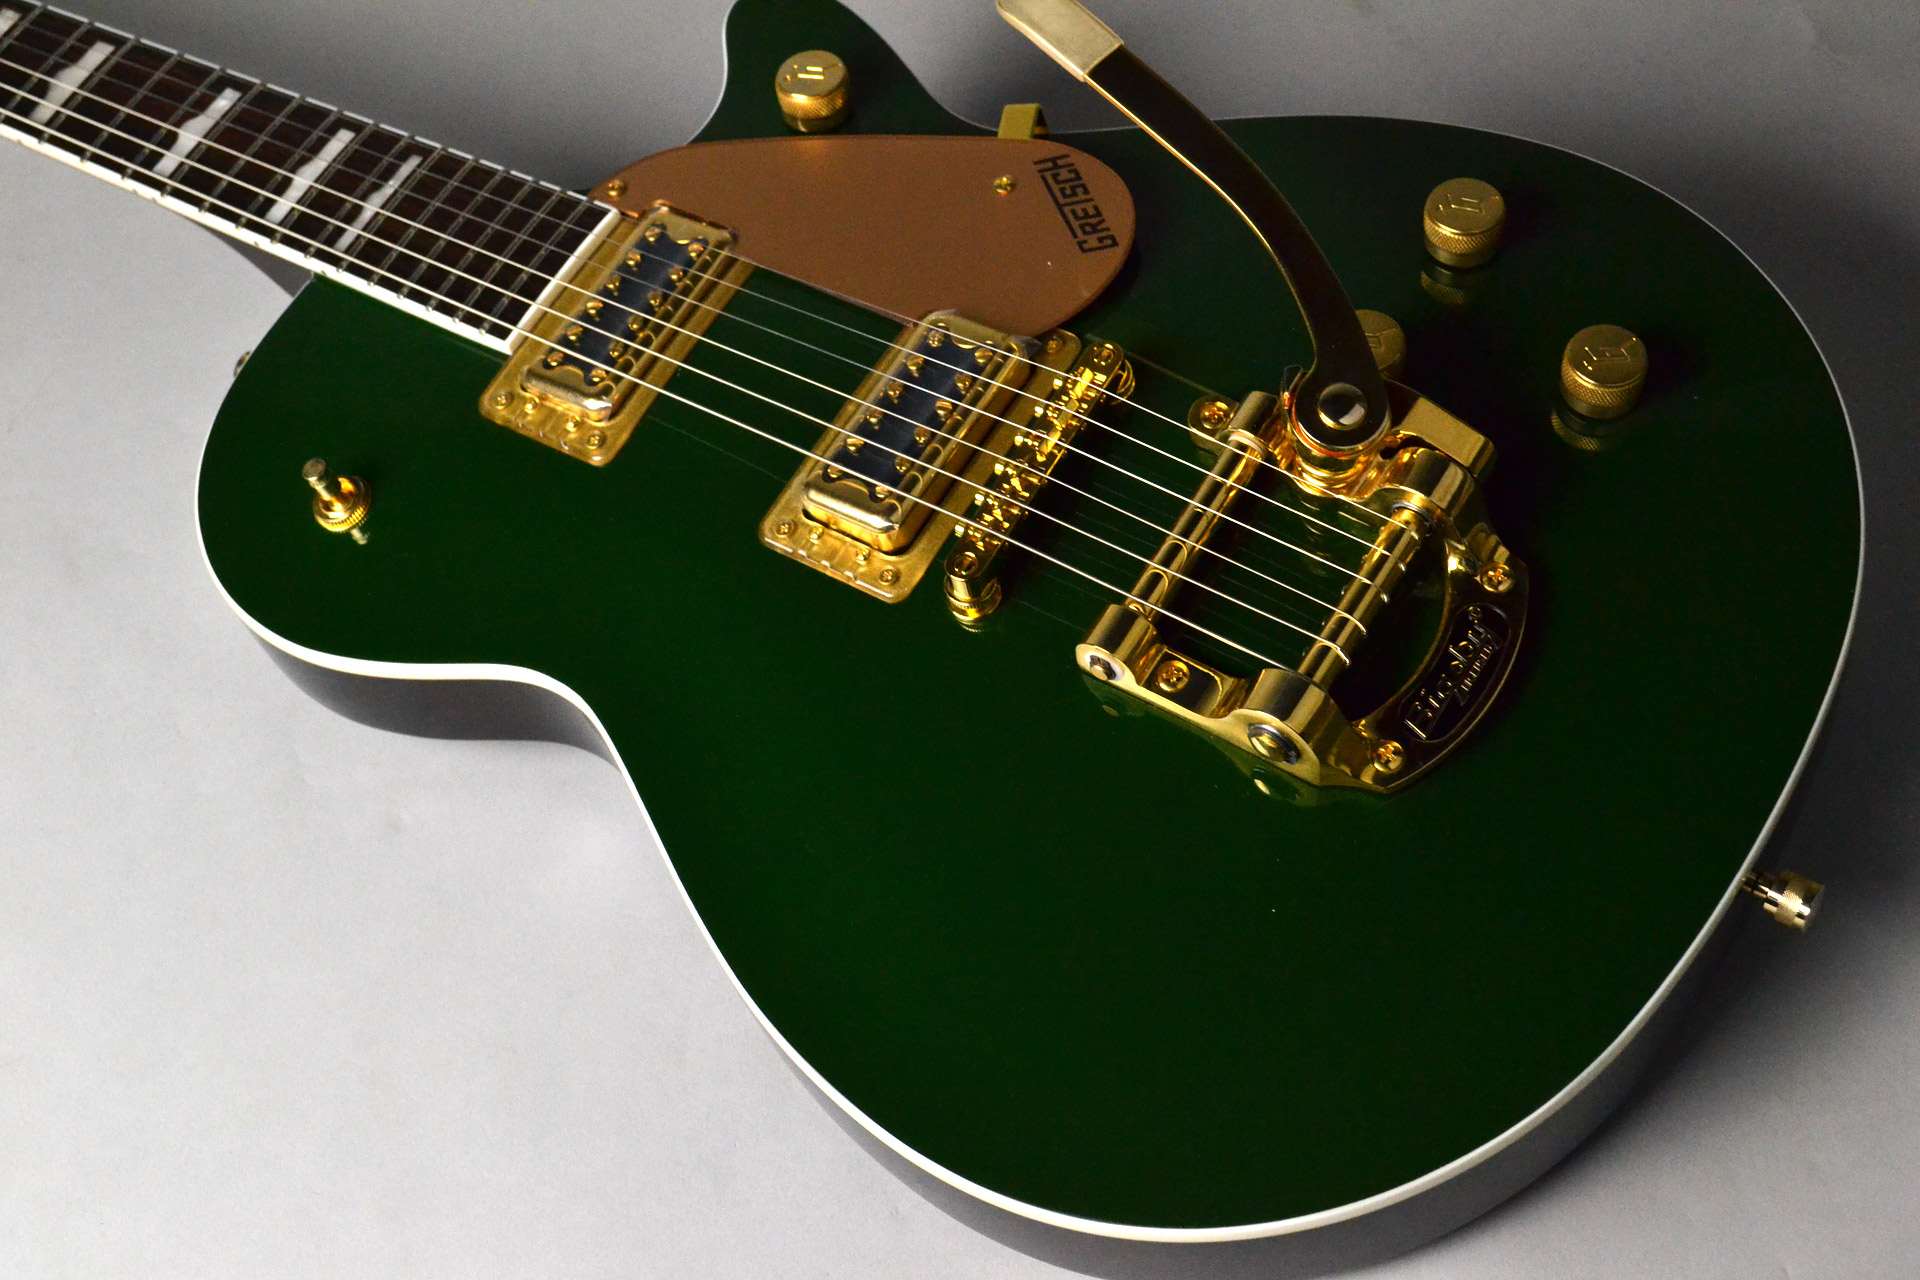 G5435TG Limited Edition Pro Jet™ with Bigsby® Cadillac Greenの全体画像(縦)